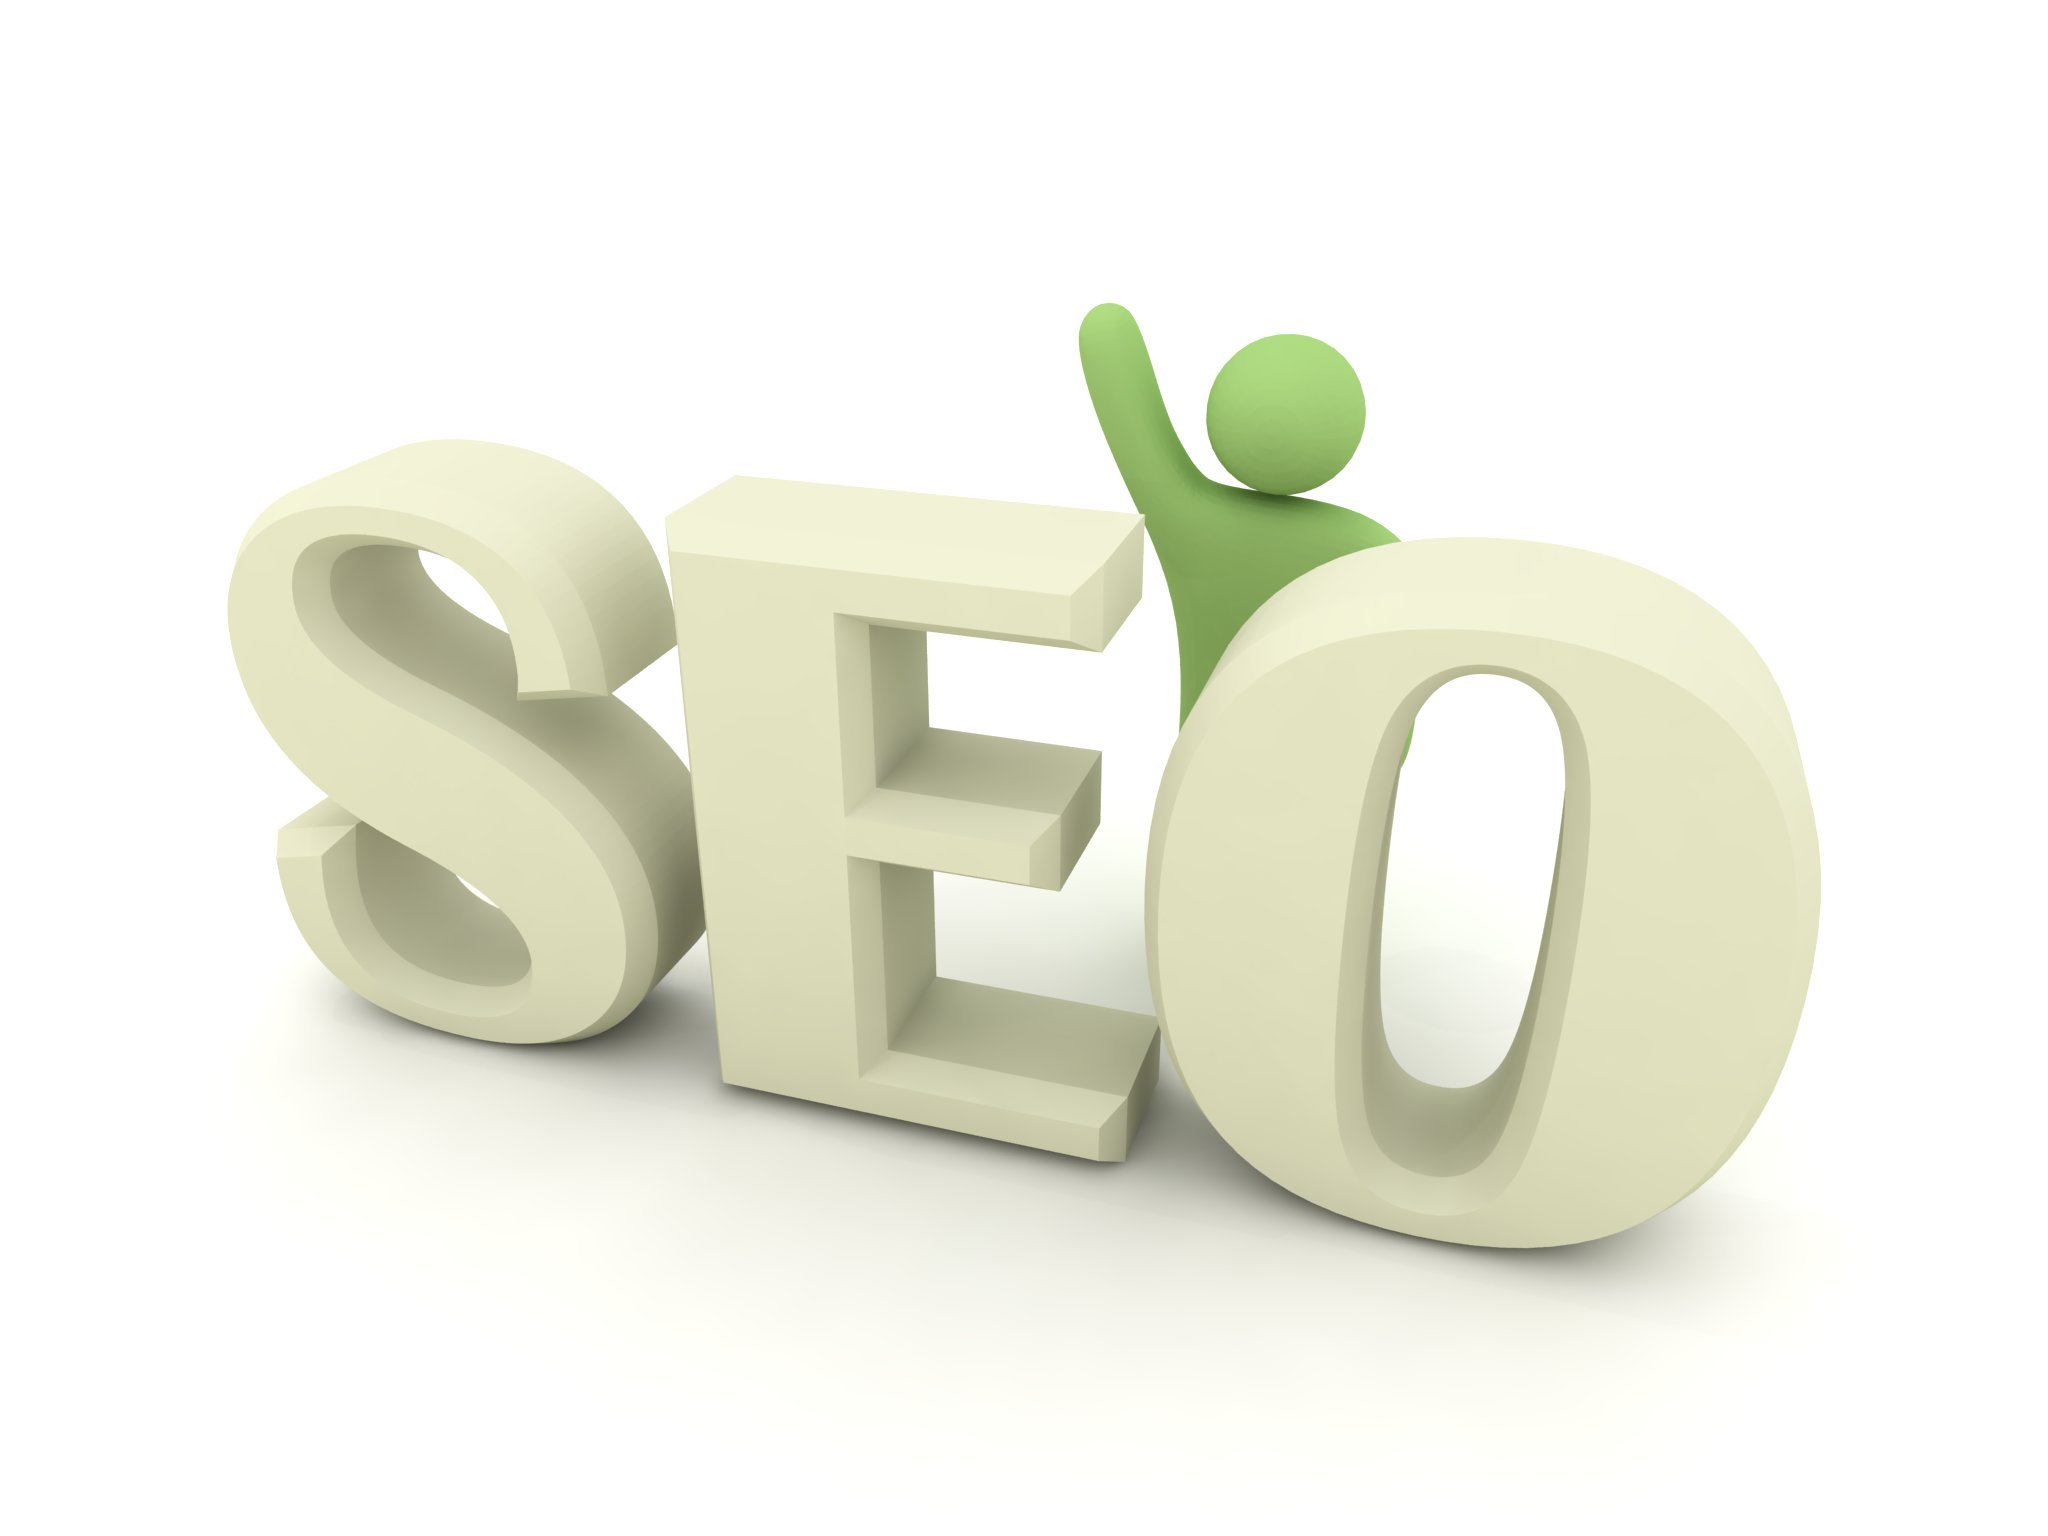 Everything you need to know to use SEO (Search Engine Optimisation) on Baidu